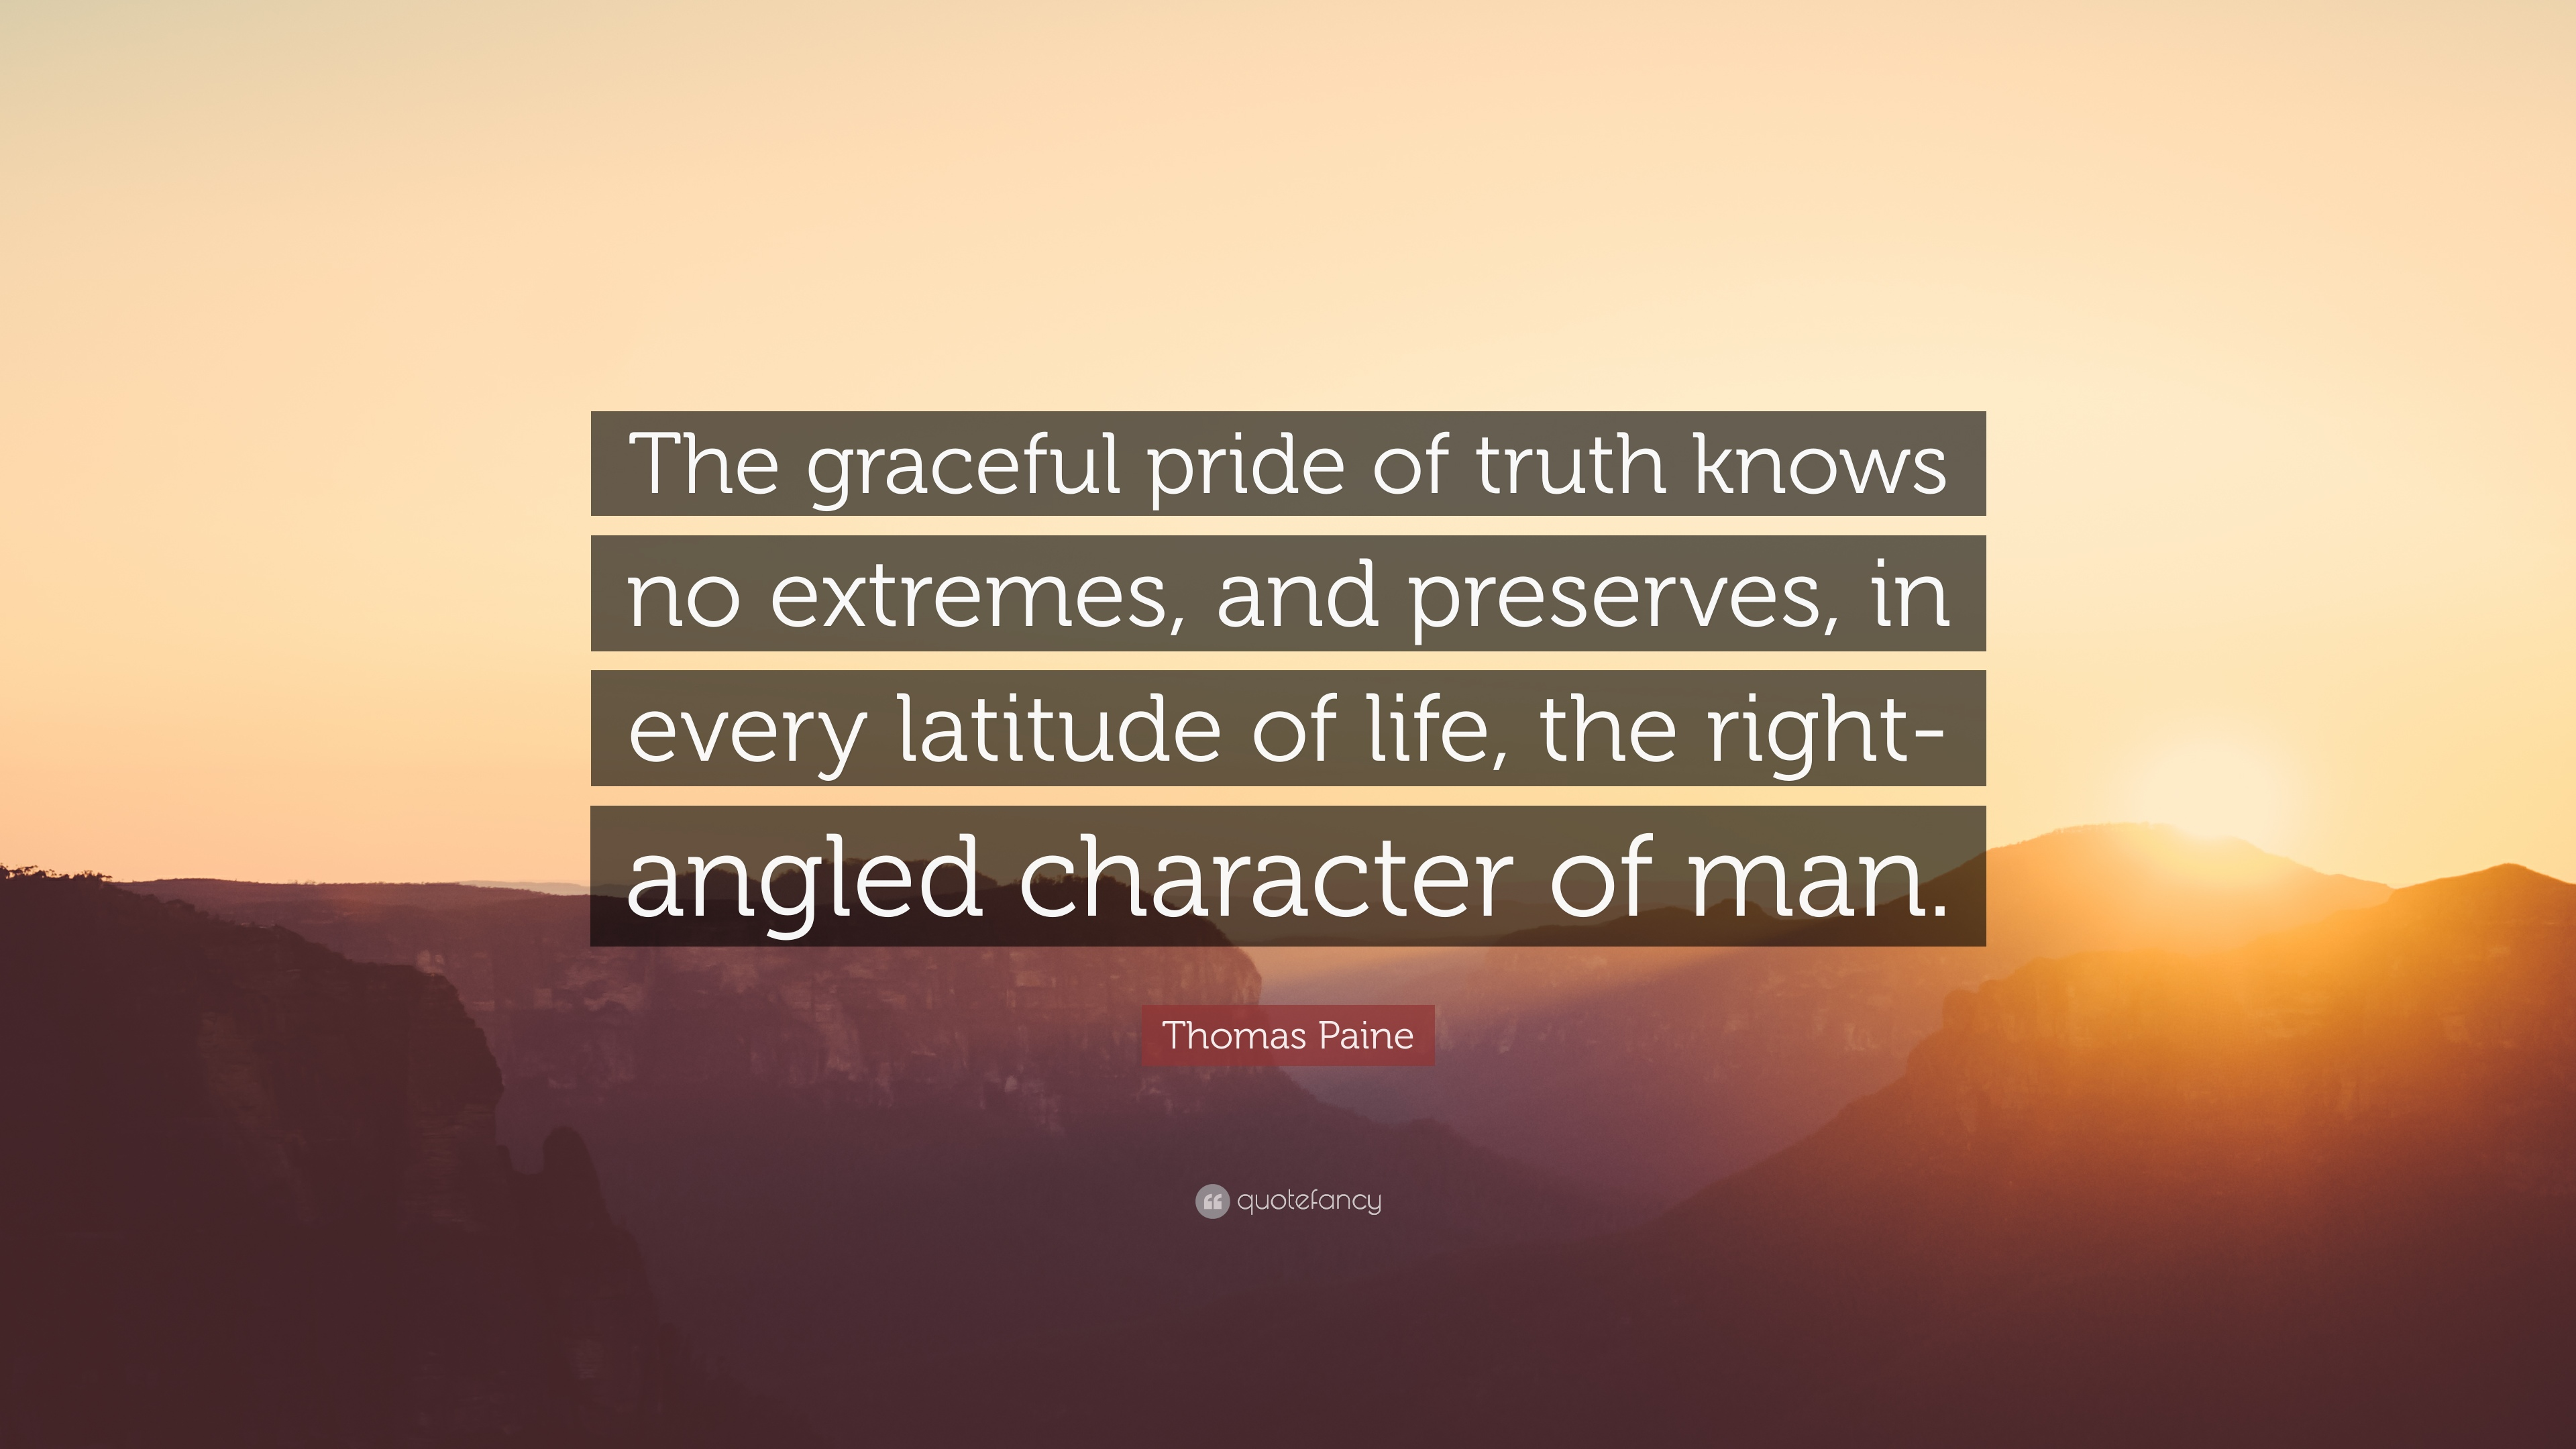 thomas paine quote the graceful pride of truth knows no extremes